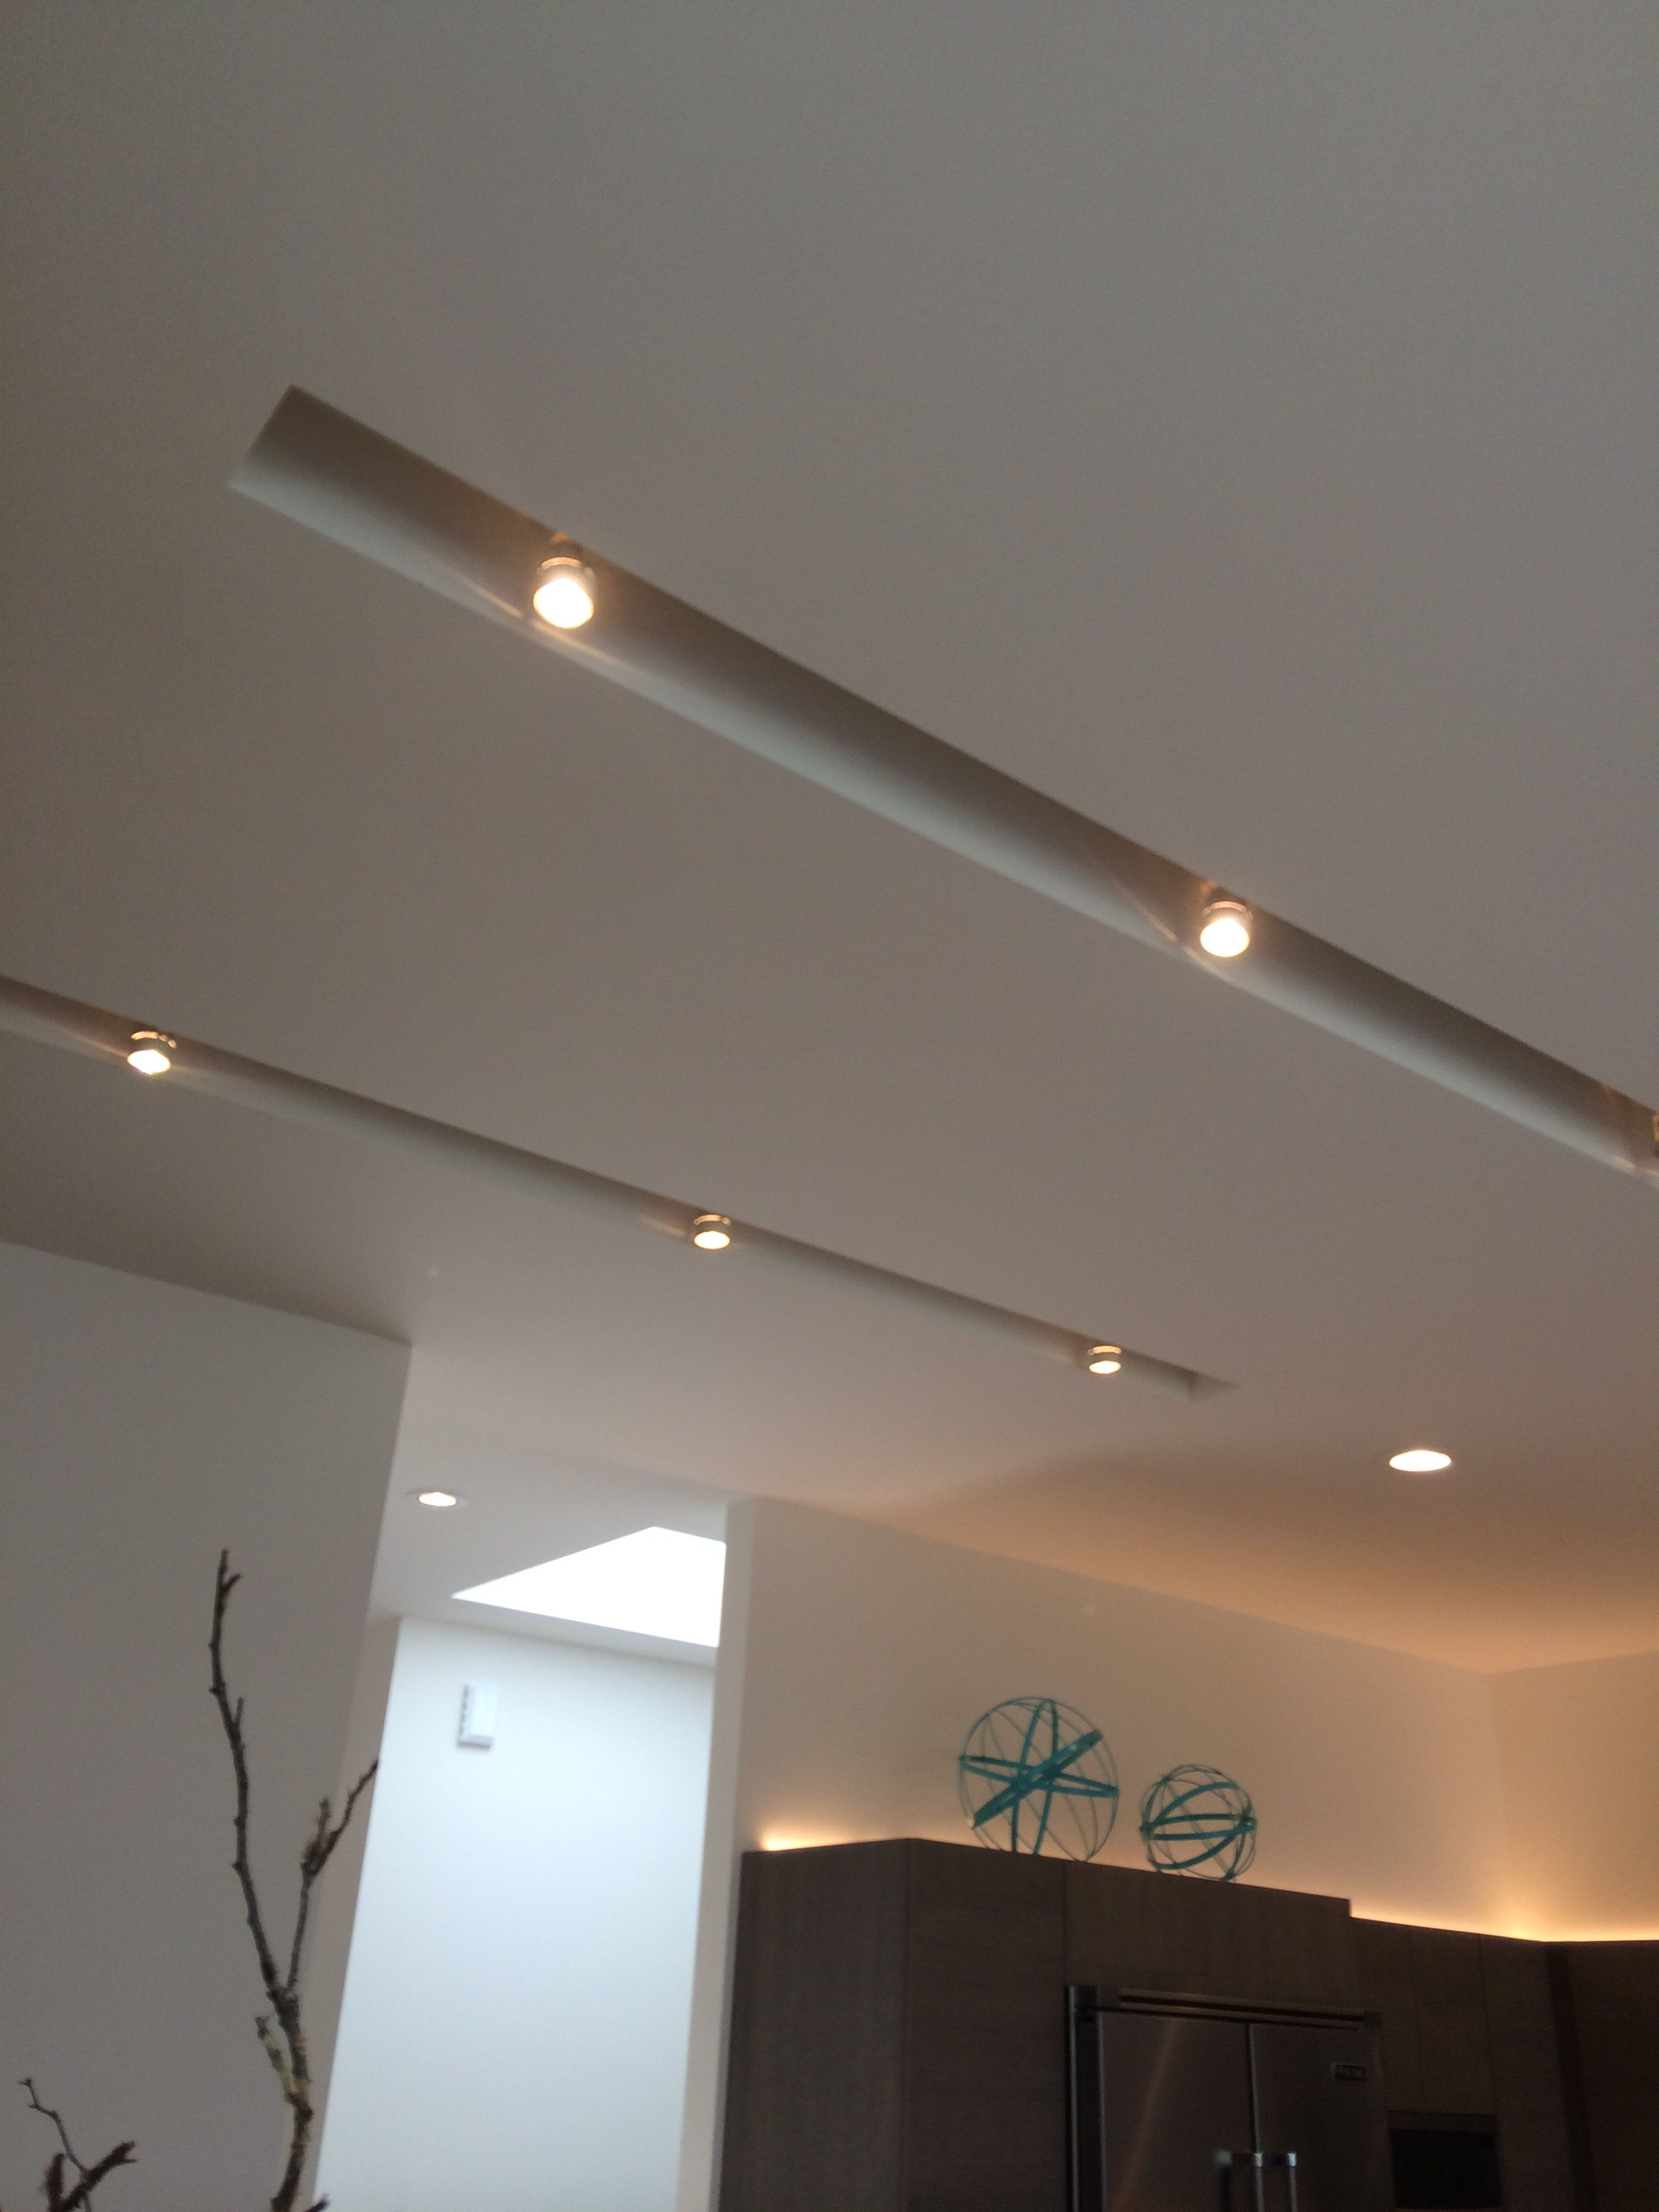 I Love This Use Of Recessed Track Lighting It S Supper Clean And